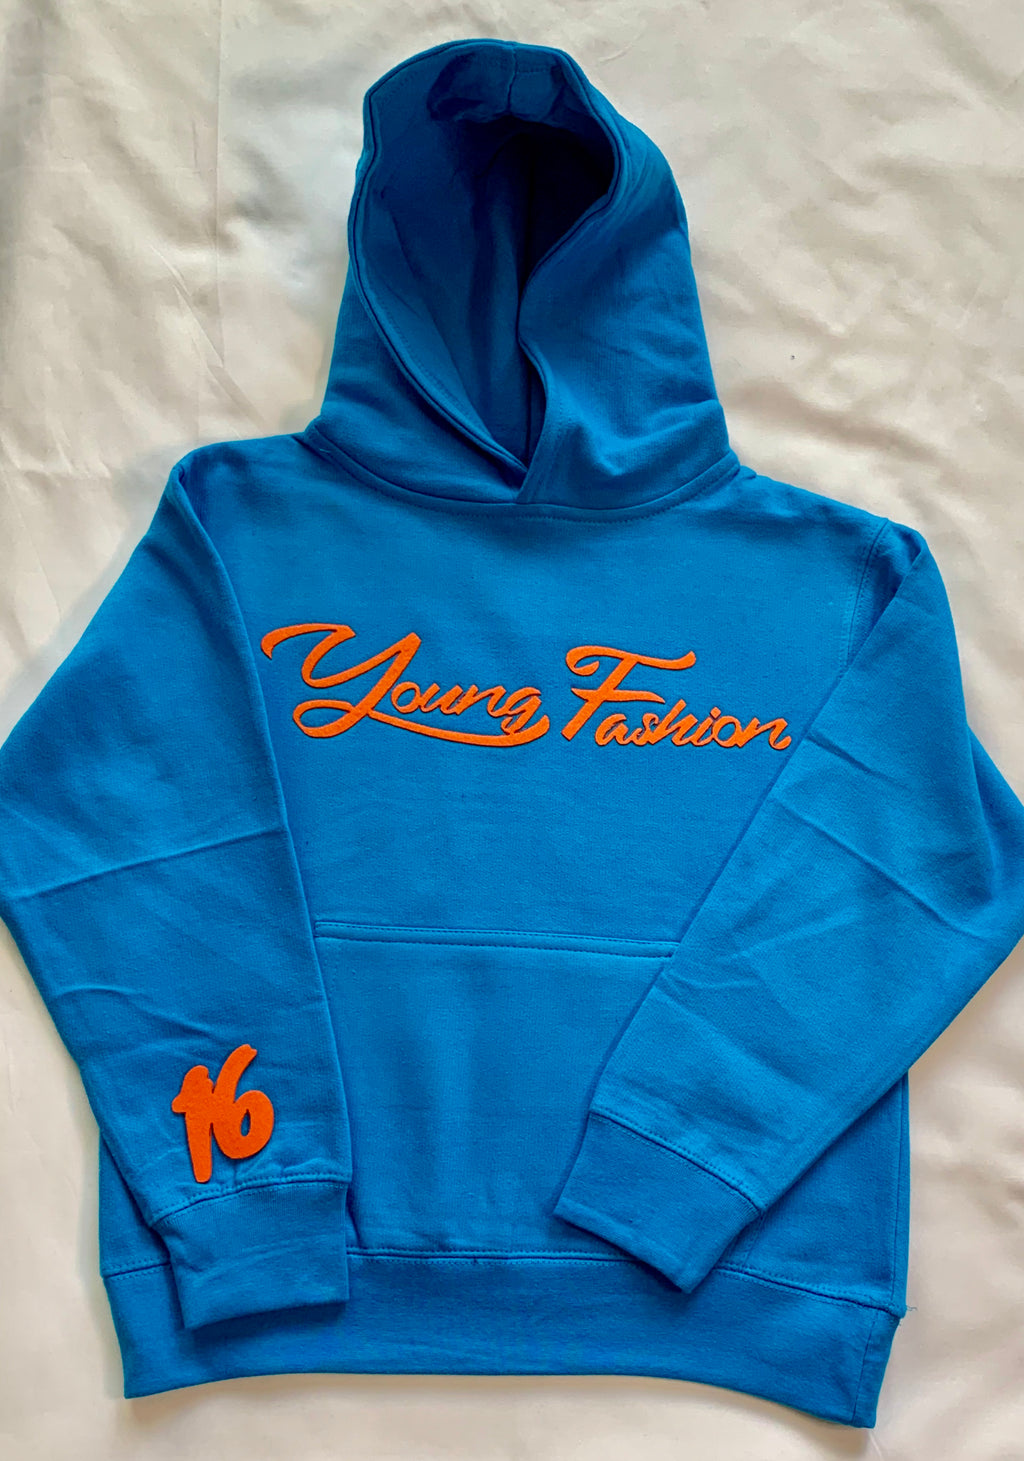 "YOUNG FASHION ""COOL BLUE"" 16 COLLECTION HOODIE"